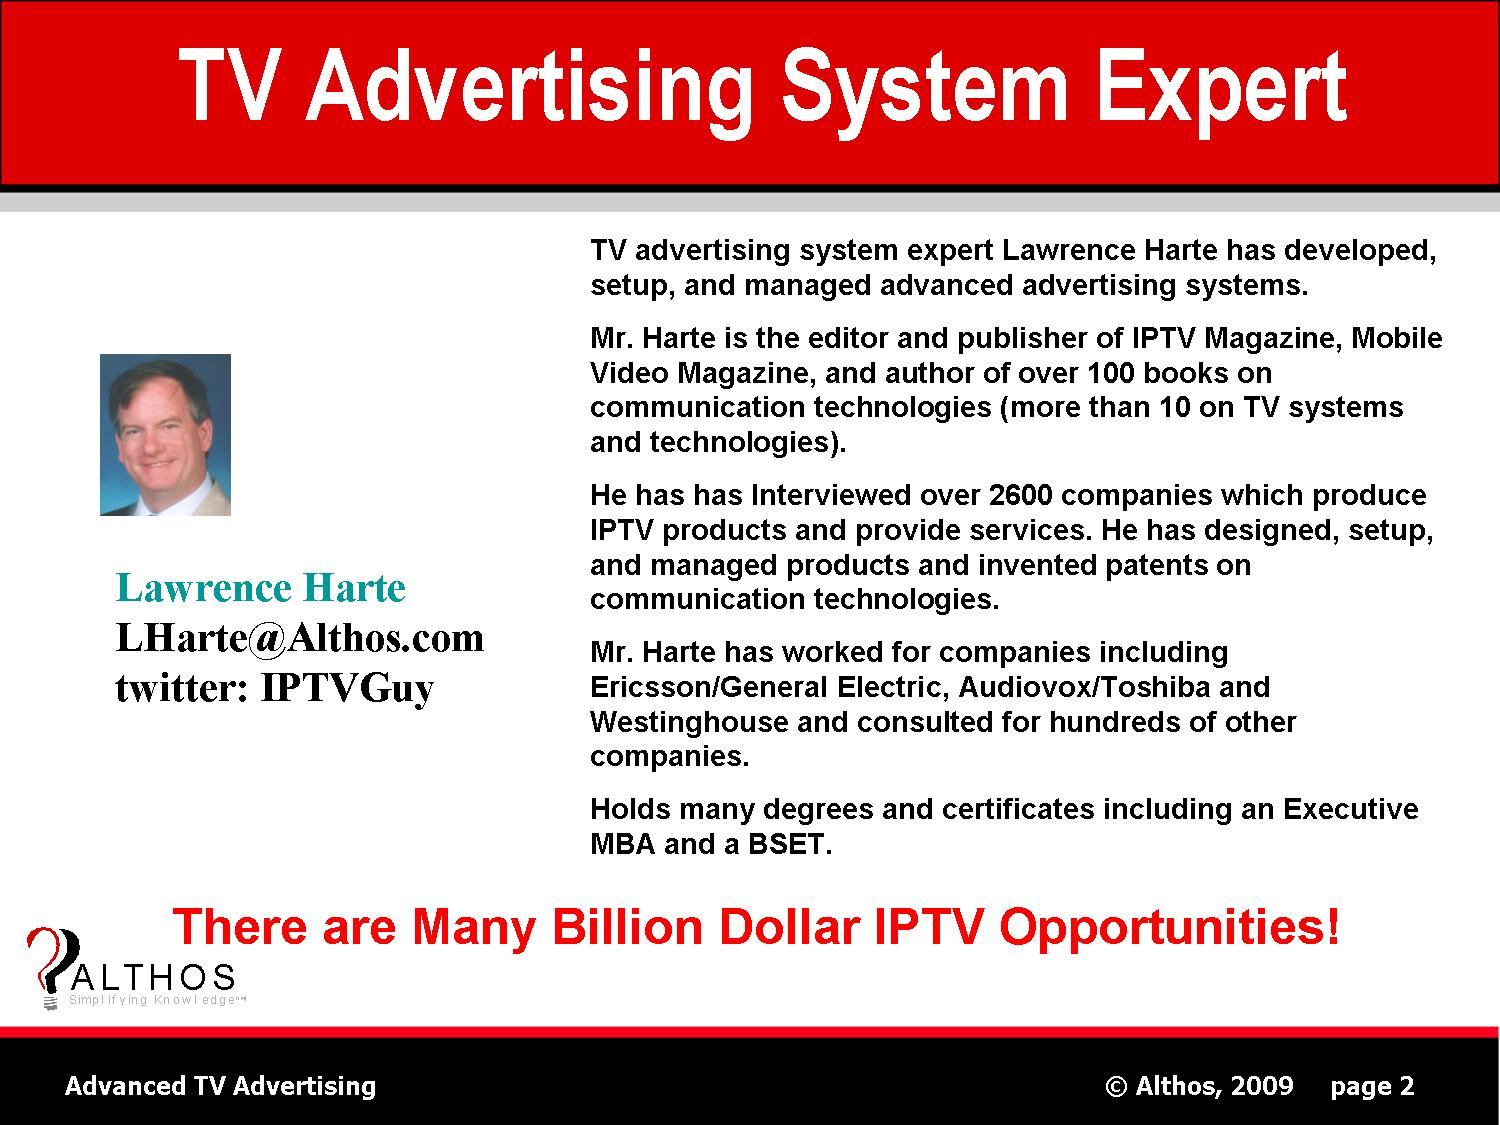 TV Advertising Marketing Expert